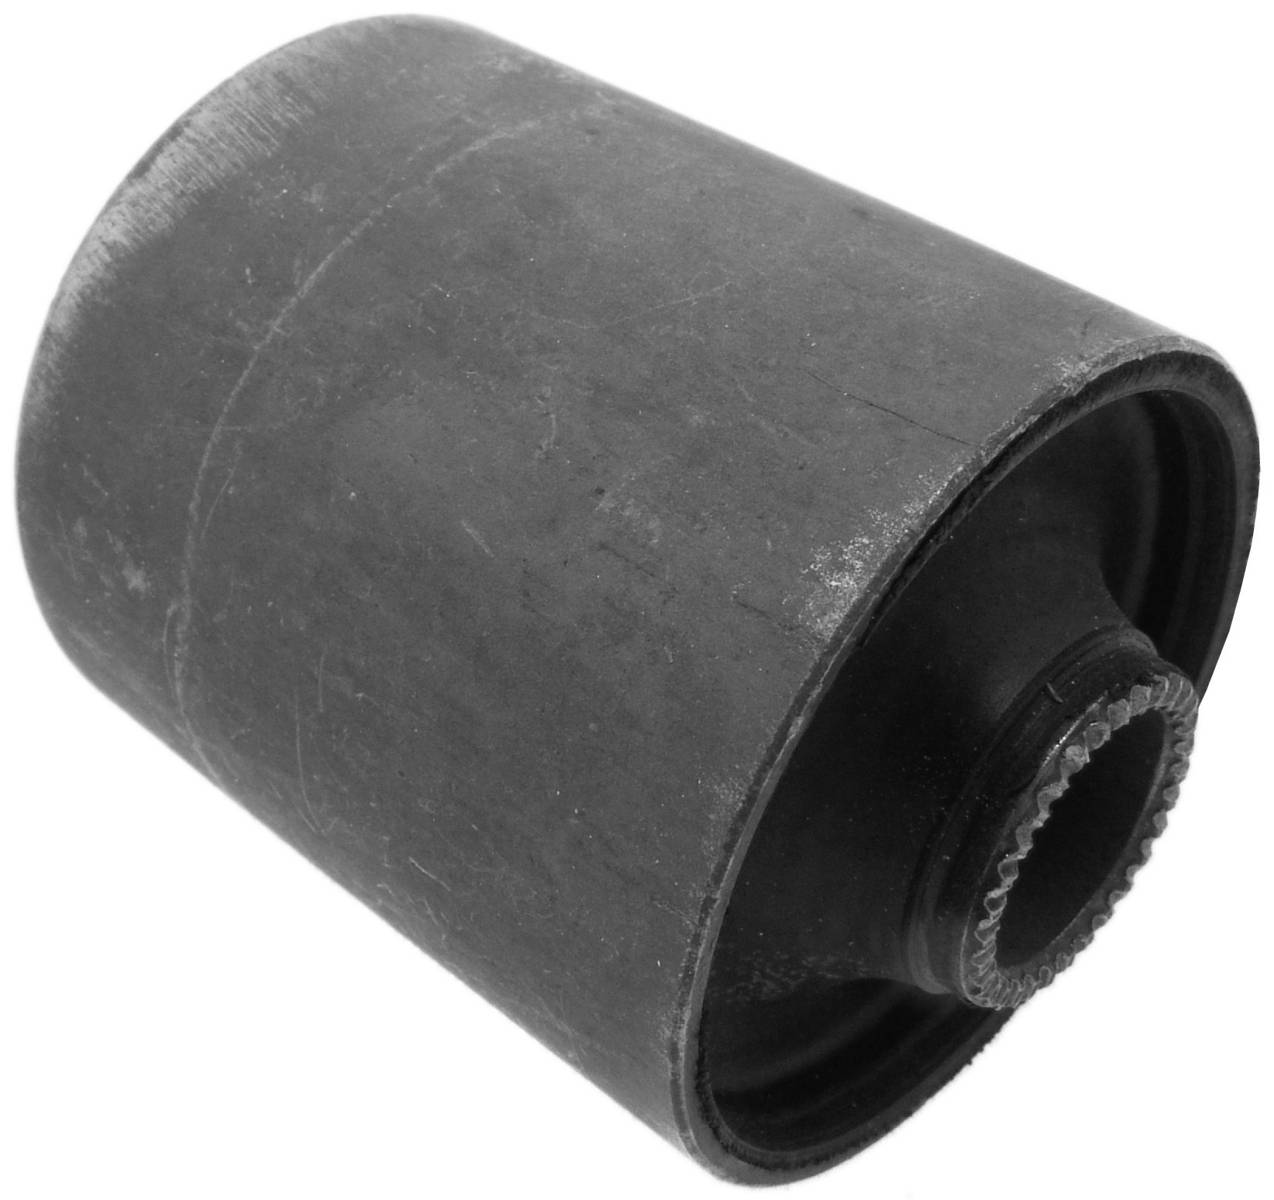 4872516150 for Rear Arm For Toyota Febest Arm Bushing